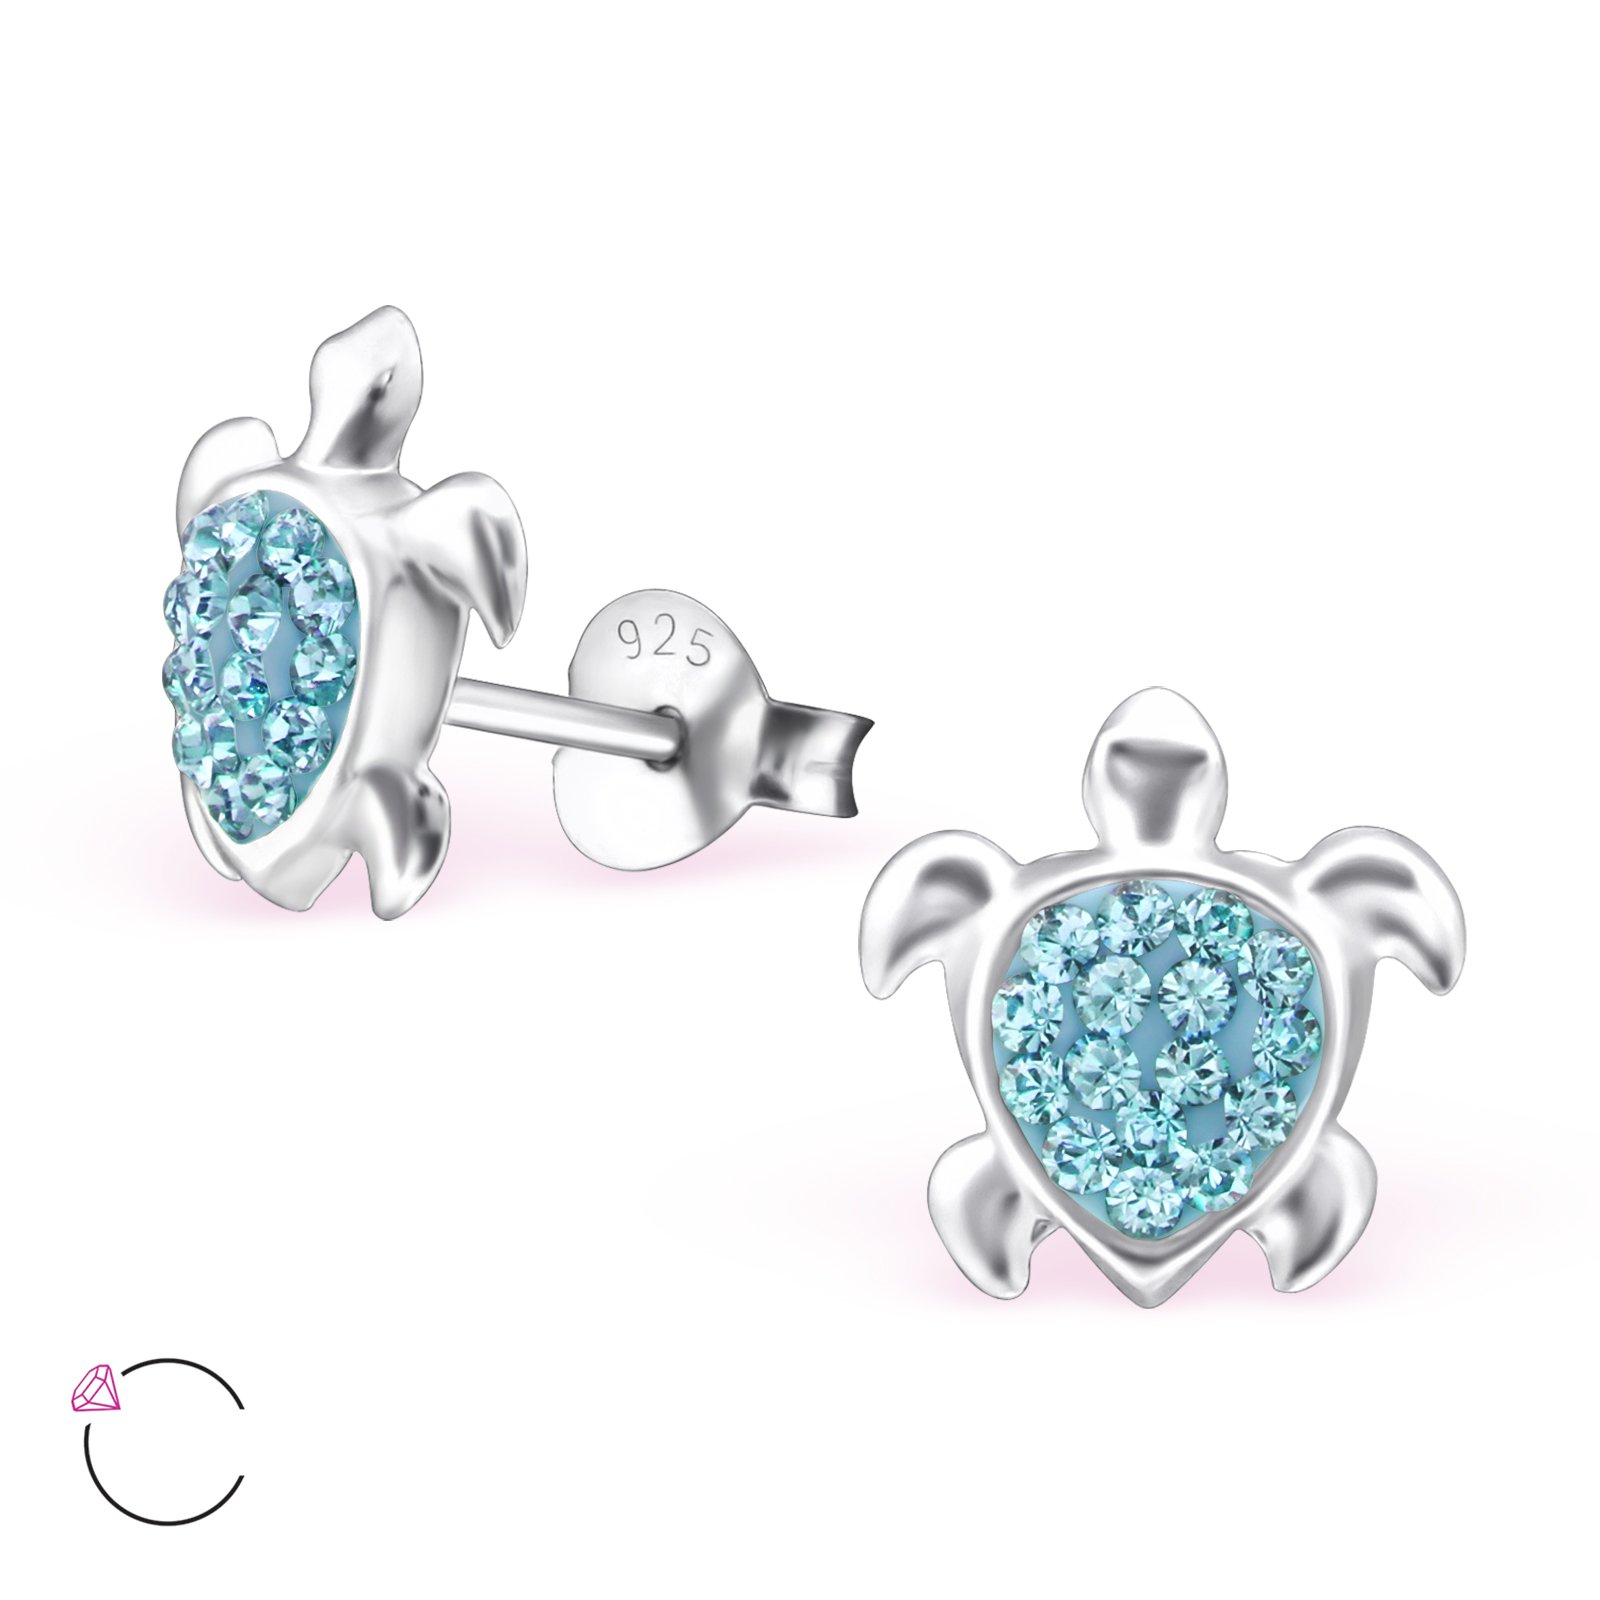 Hypoallergenic Turtle Stud Earrings With Swarovski Crystals for Girls (Nickel Free and Safe for Sensitive Ears) - Aquamarine